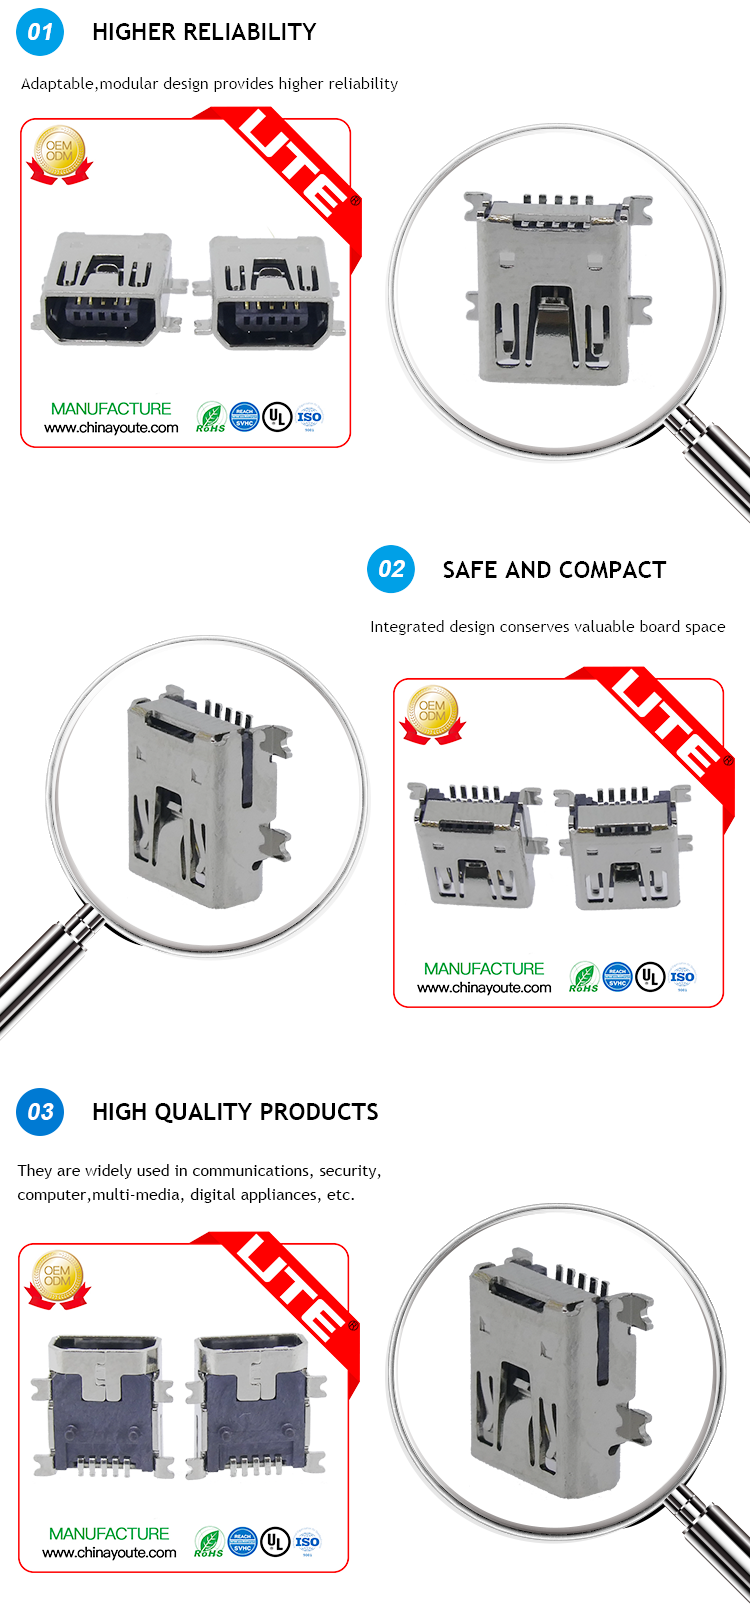 Mini Usb Connector With A/b Male Port Plug To Color Code ... Usb Color Coded Wires on shielded wire, clear wire, metal wire, plastic wire, heavy duty wire, color coding wire, blue wire, white wire,